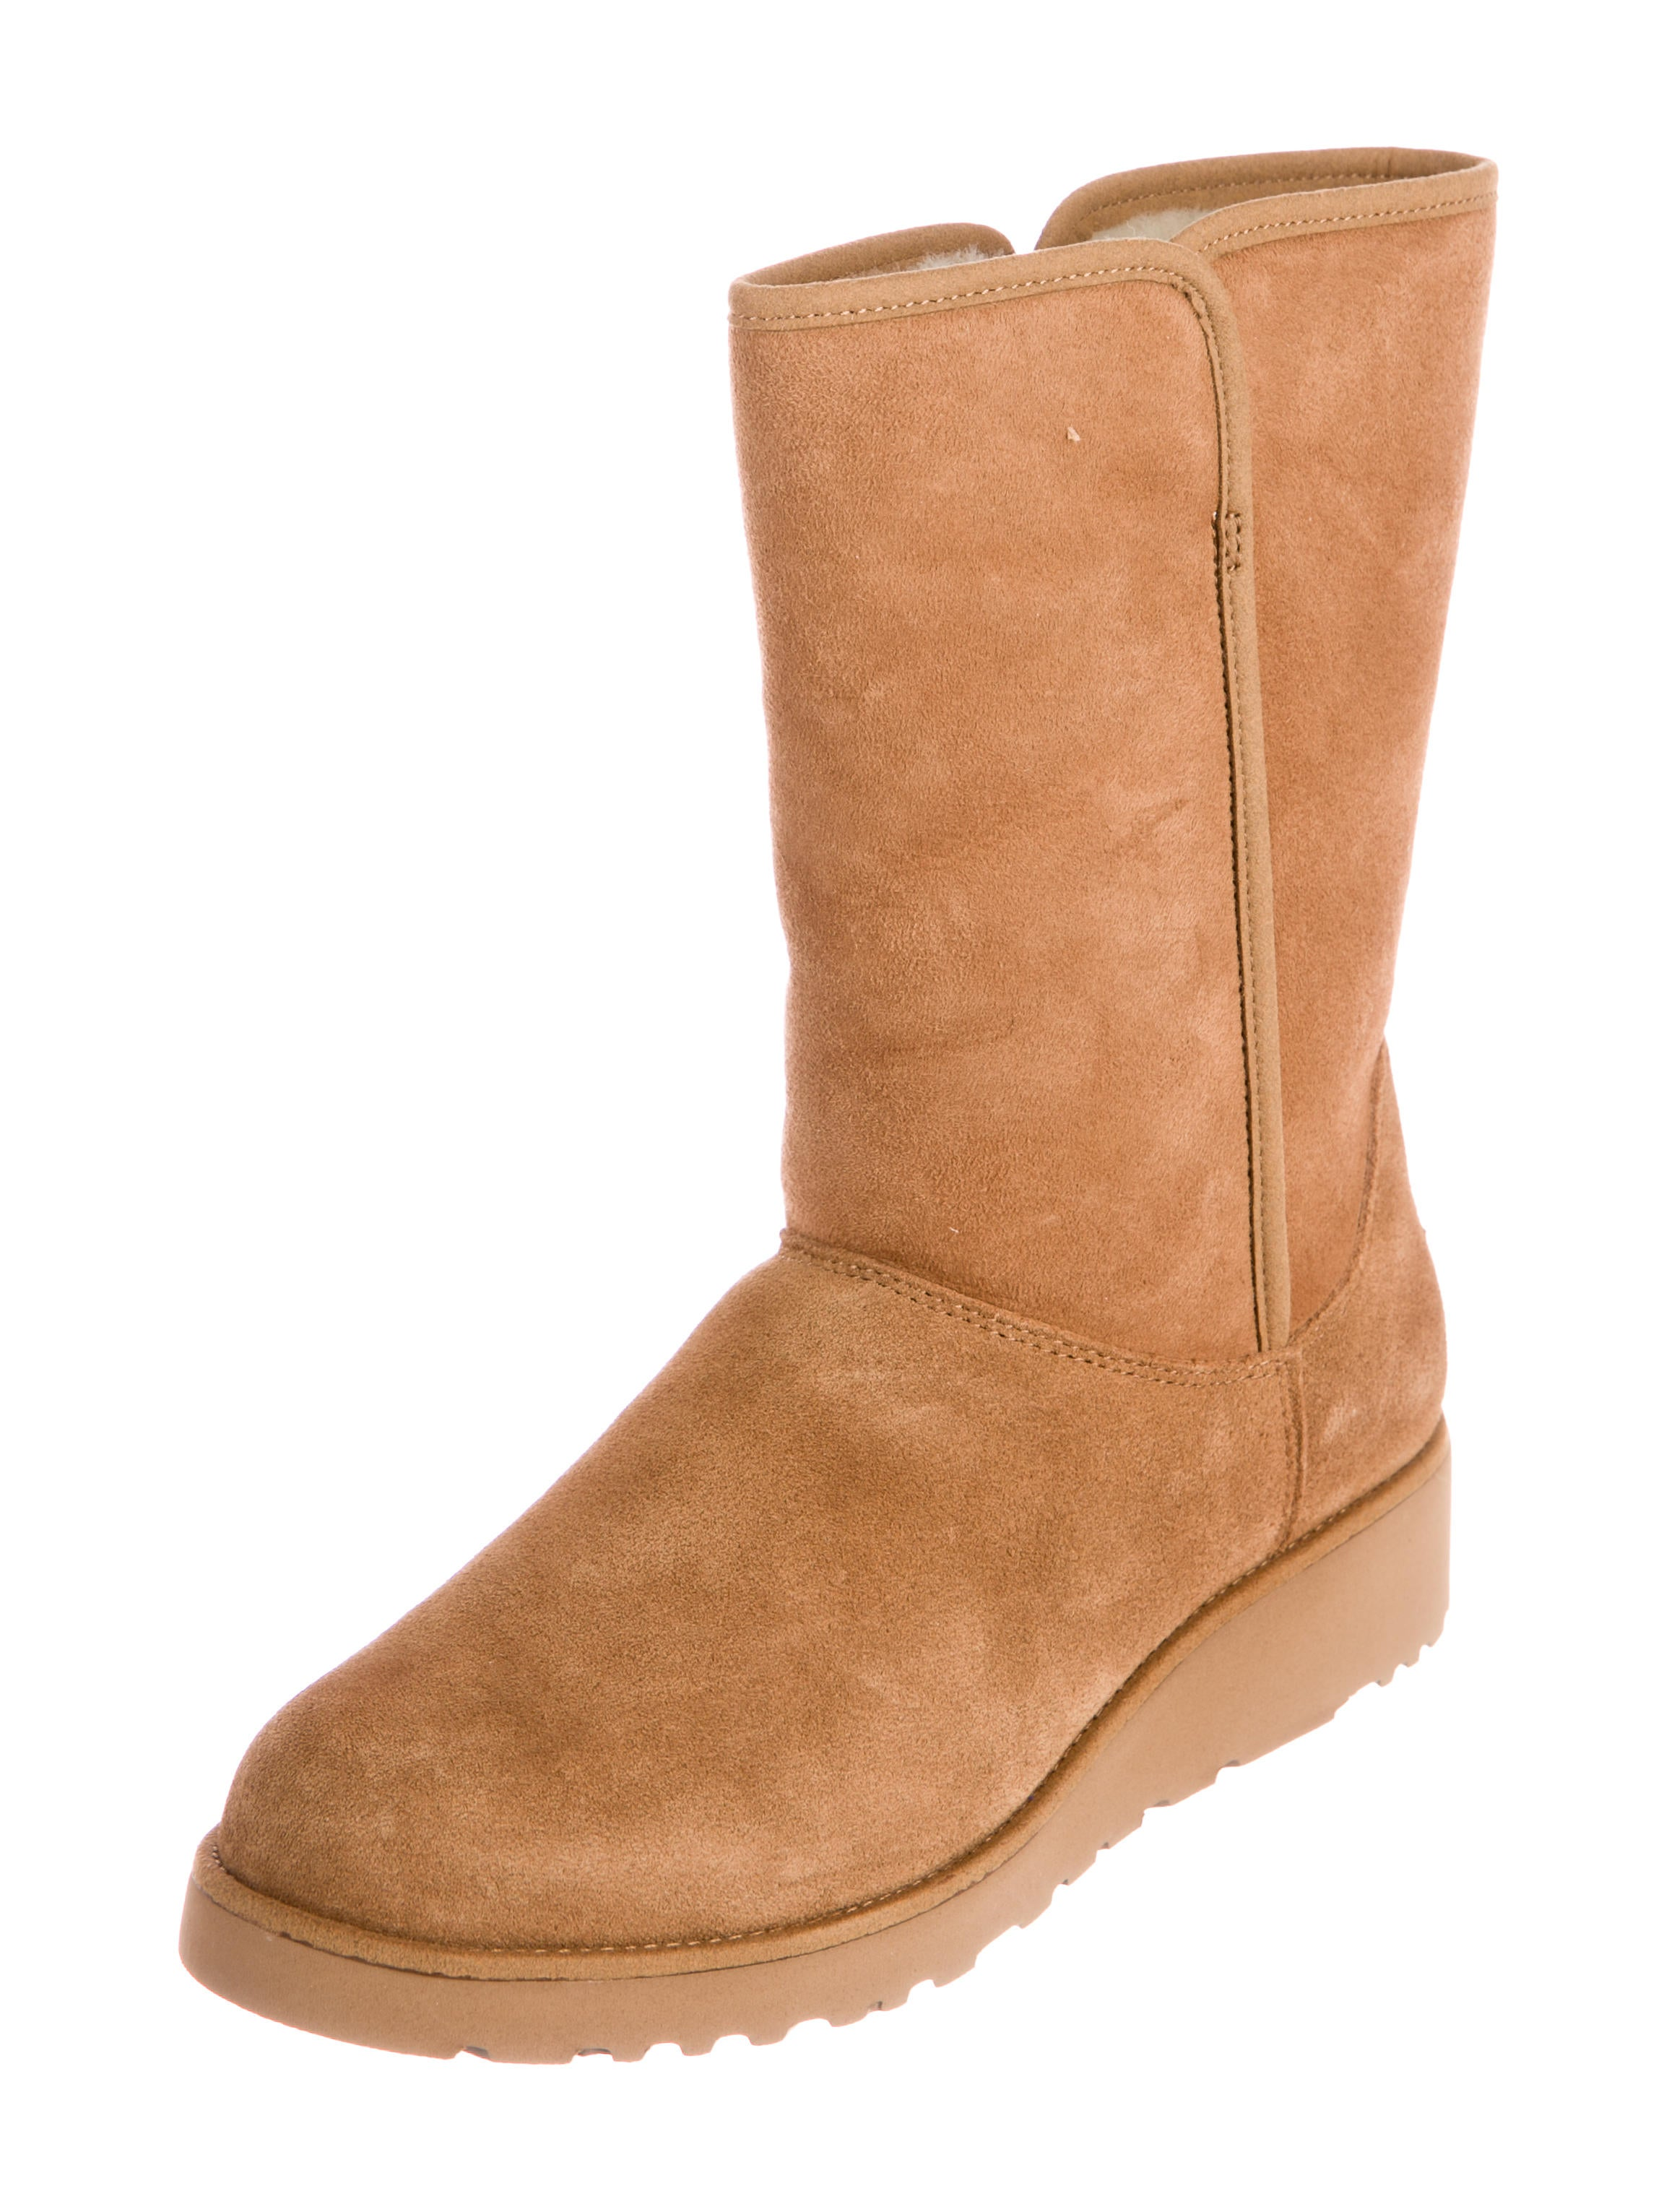 UGG Australia Amie Suede Boots w/ Tags cheap sale eastbay buy cheap footlocker pictures huge surprise wiki cheap price qQQQXB